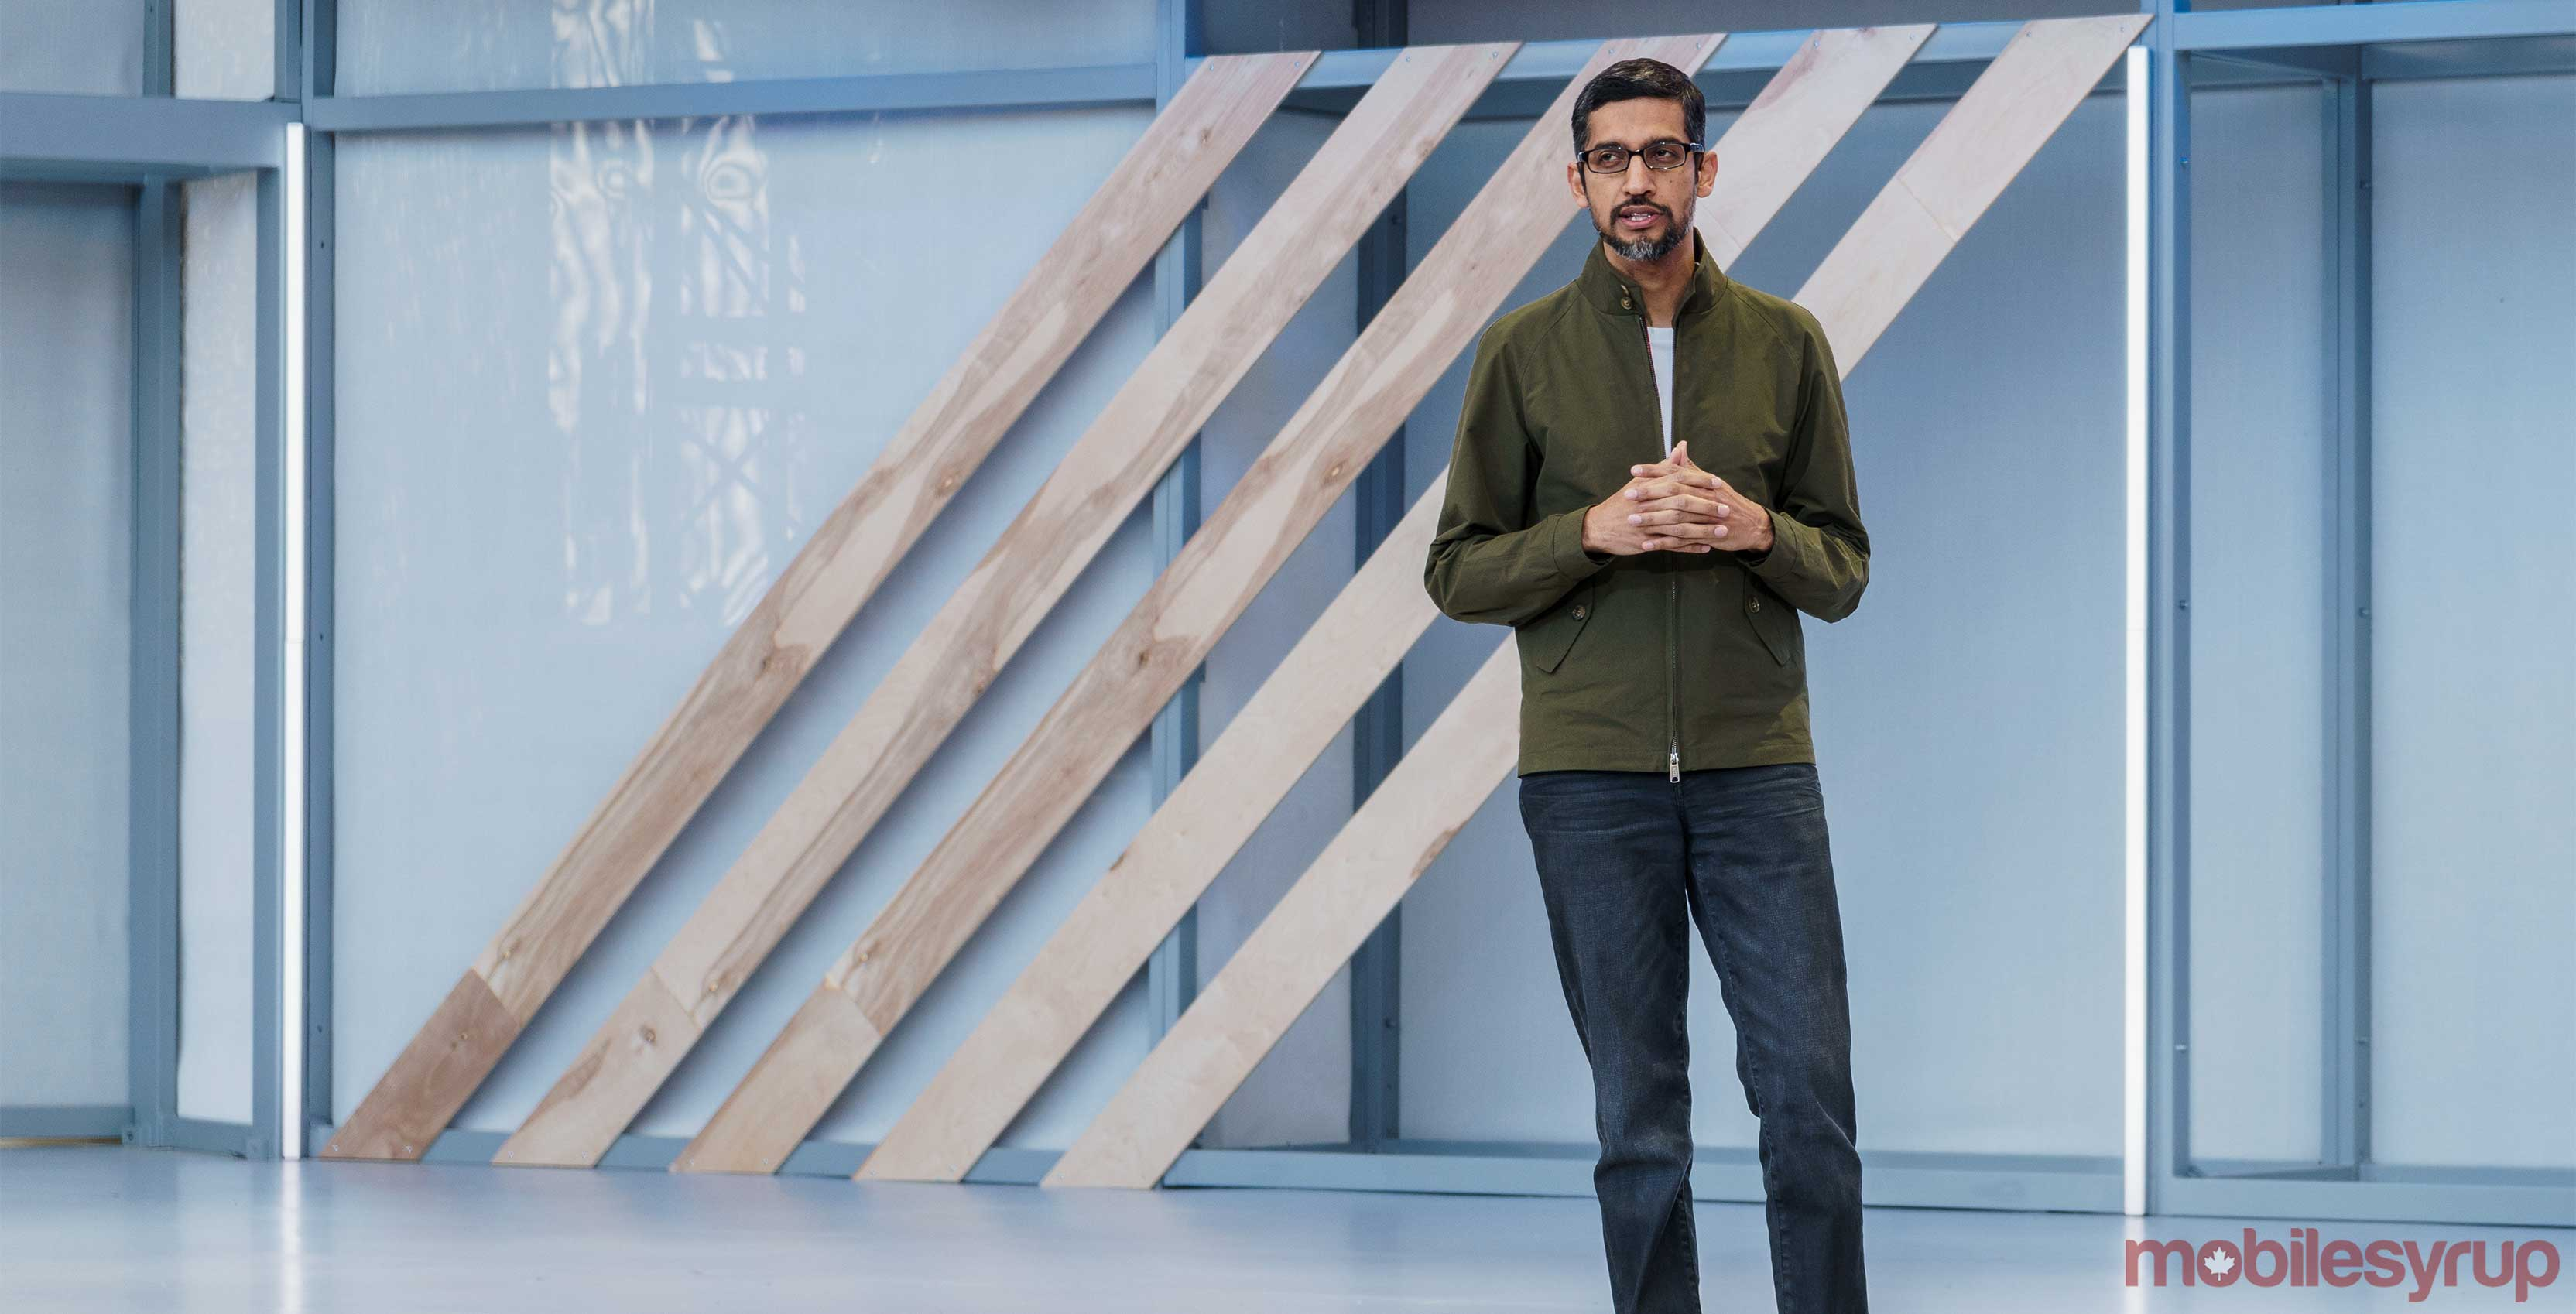 Google CEO says YouTube is too big to manage all harmful content